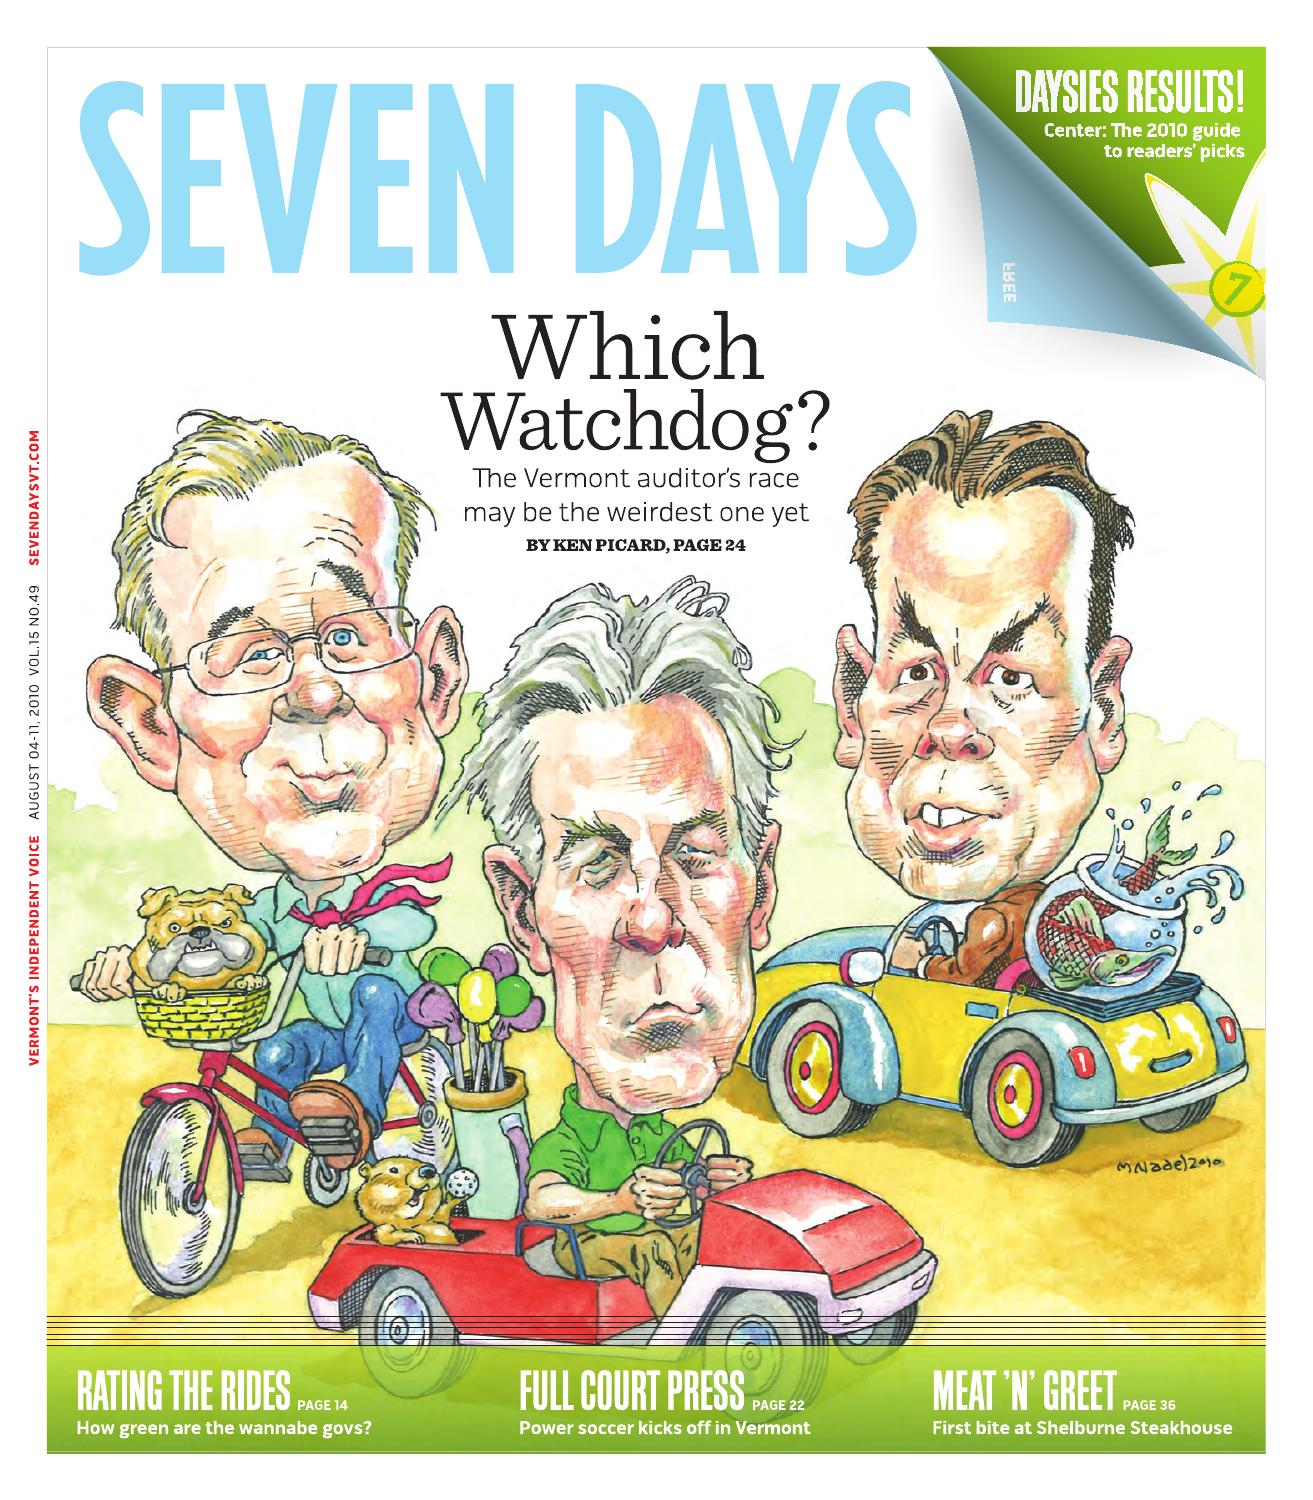 seven days august 4 2010 by seven days issuu